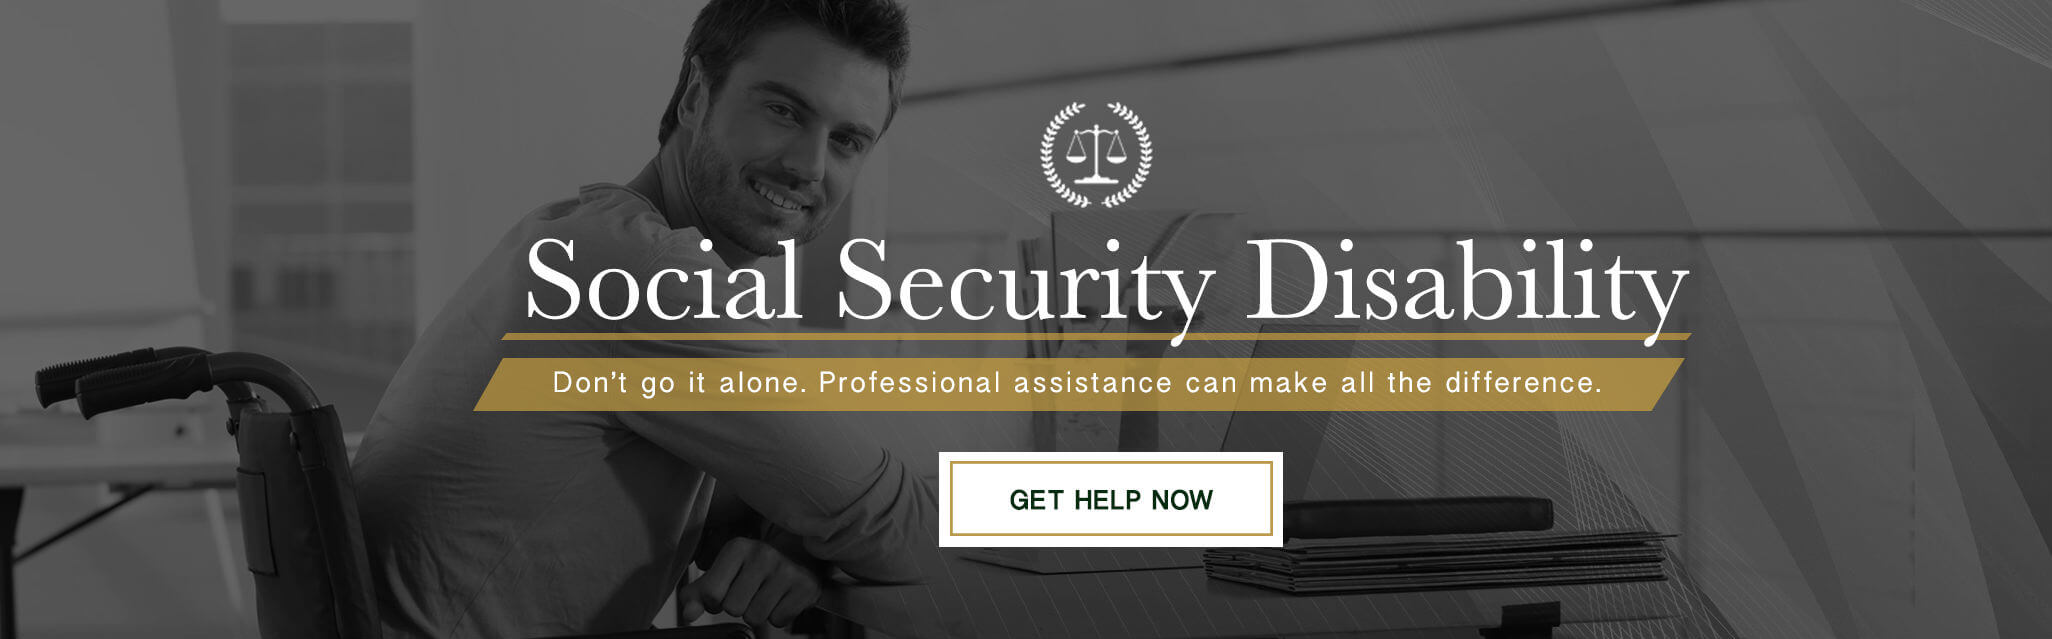 Social Security Disablity case